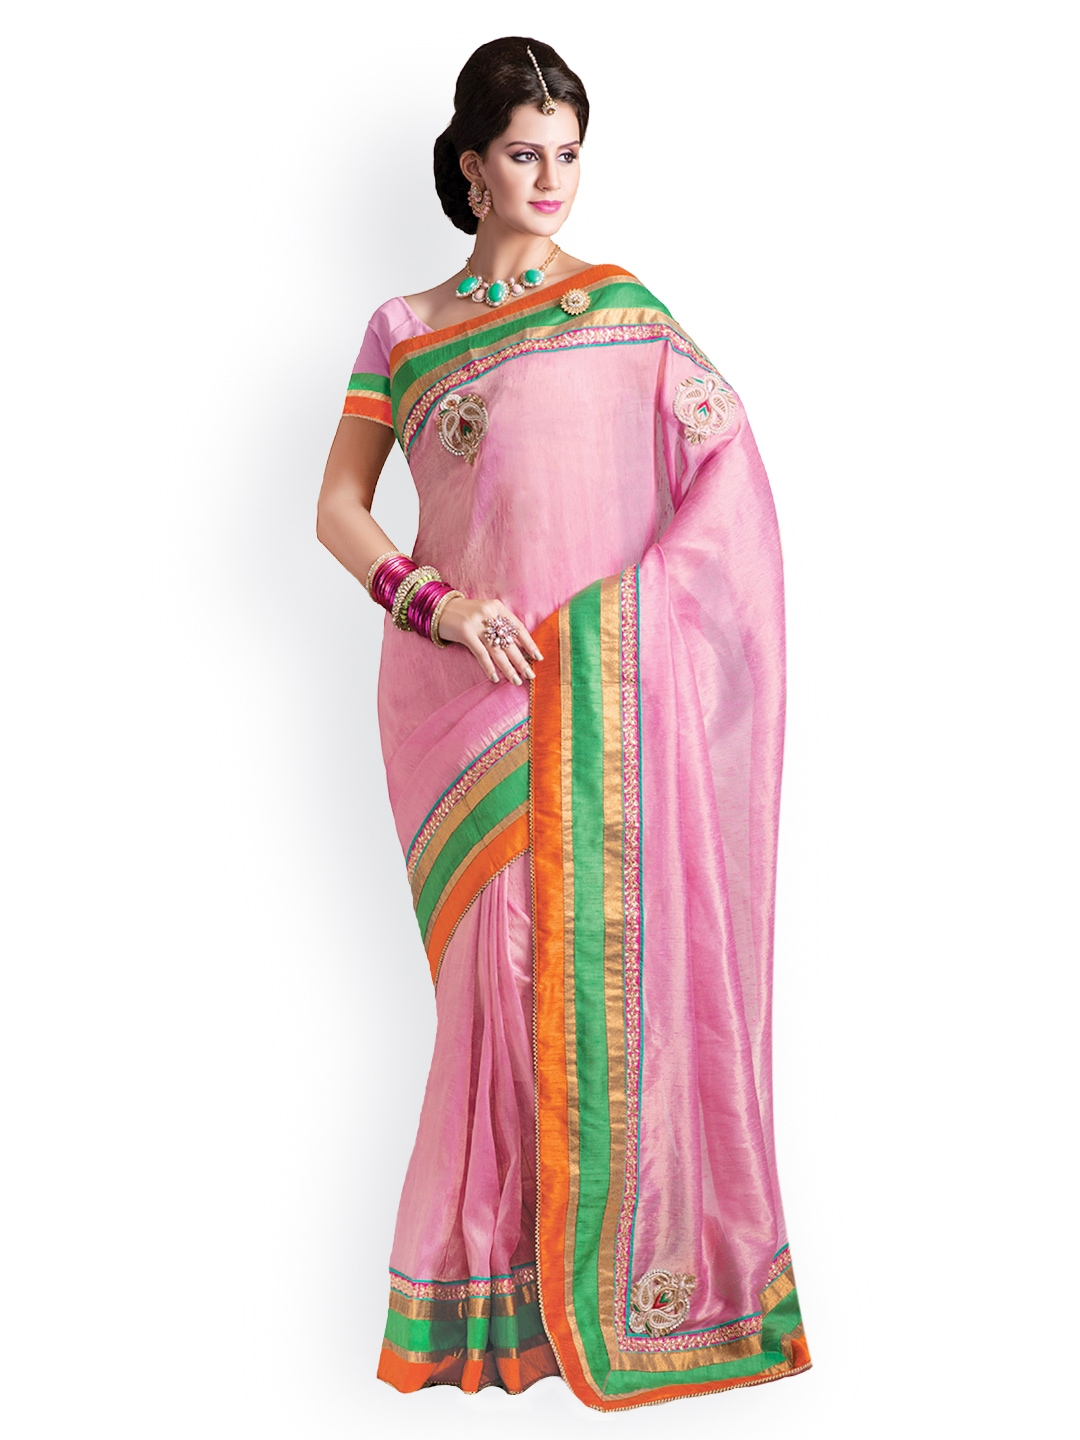 Myntra Kashish Lifestyle Pink Jute Fashion Saree 715061 Buy Myntra Kashish Lifestyle Fashion